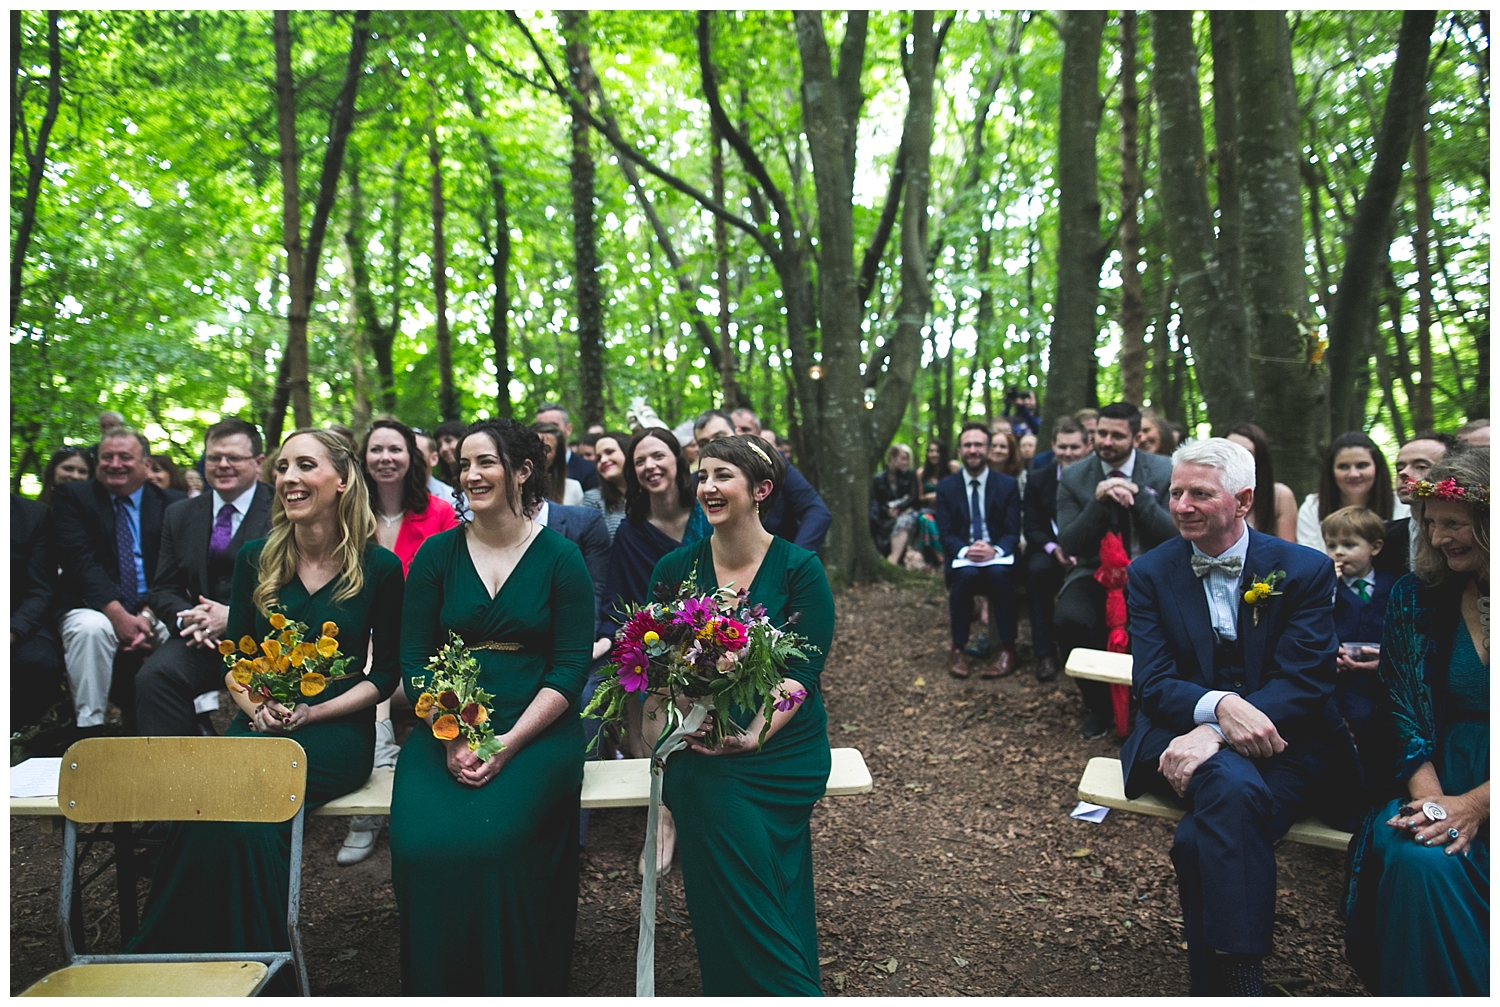 Guests smiling and laughing at an outdoor wood ceremony